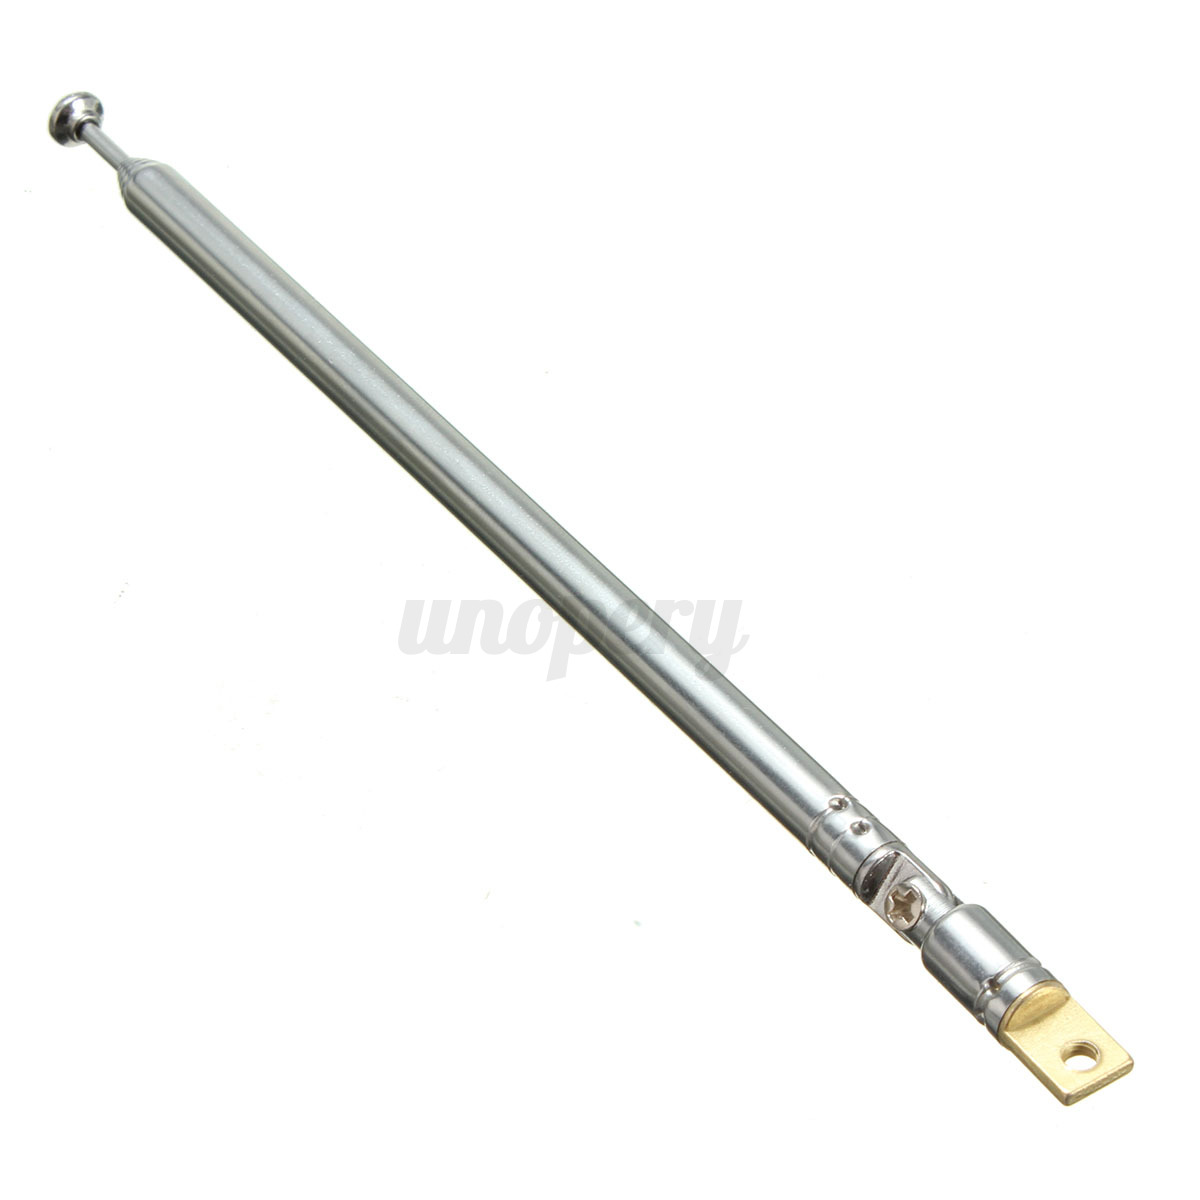 1pcs Replacement 60cm 6 Sections Telescopic Antenna Aerial